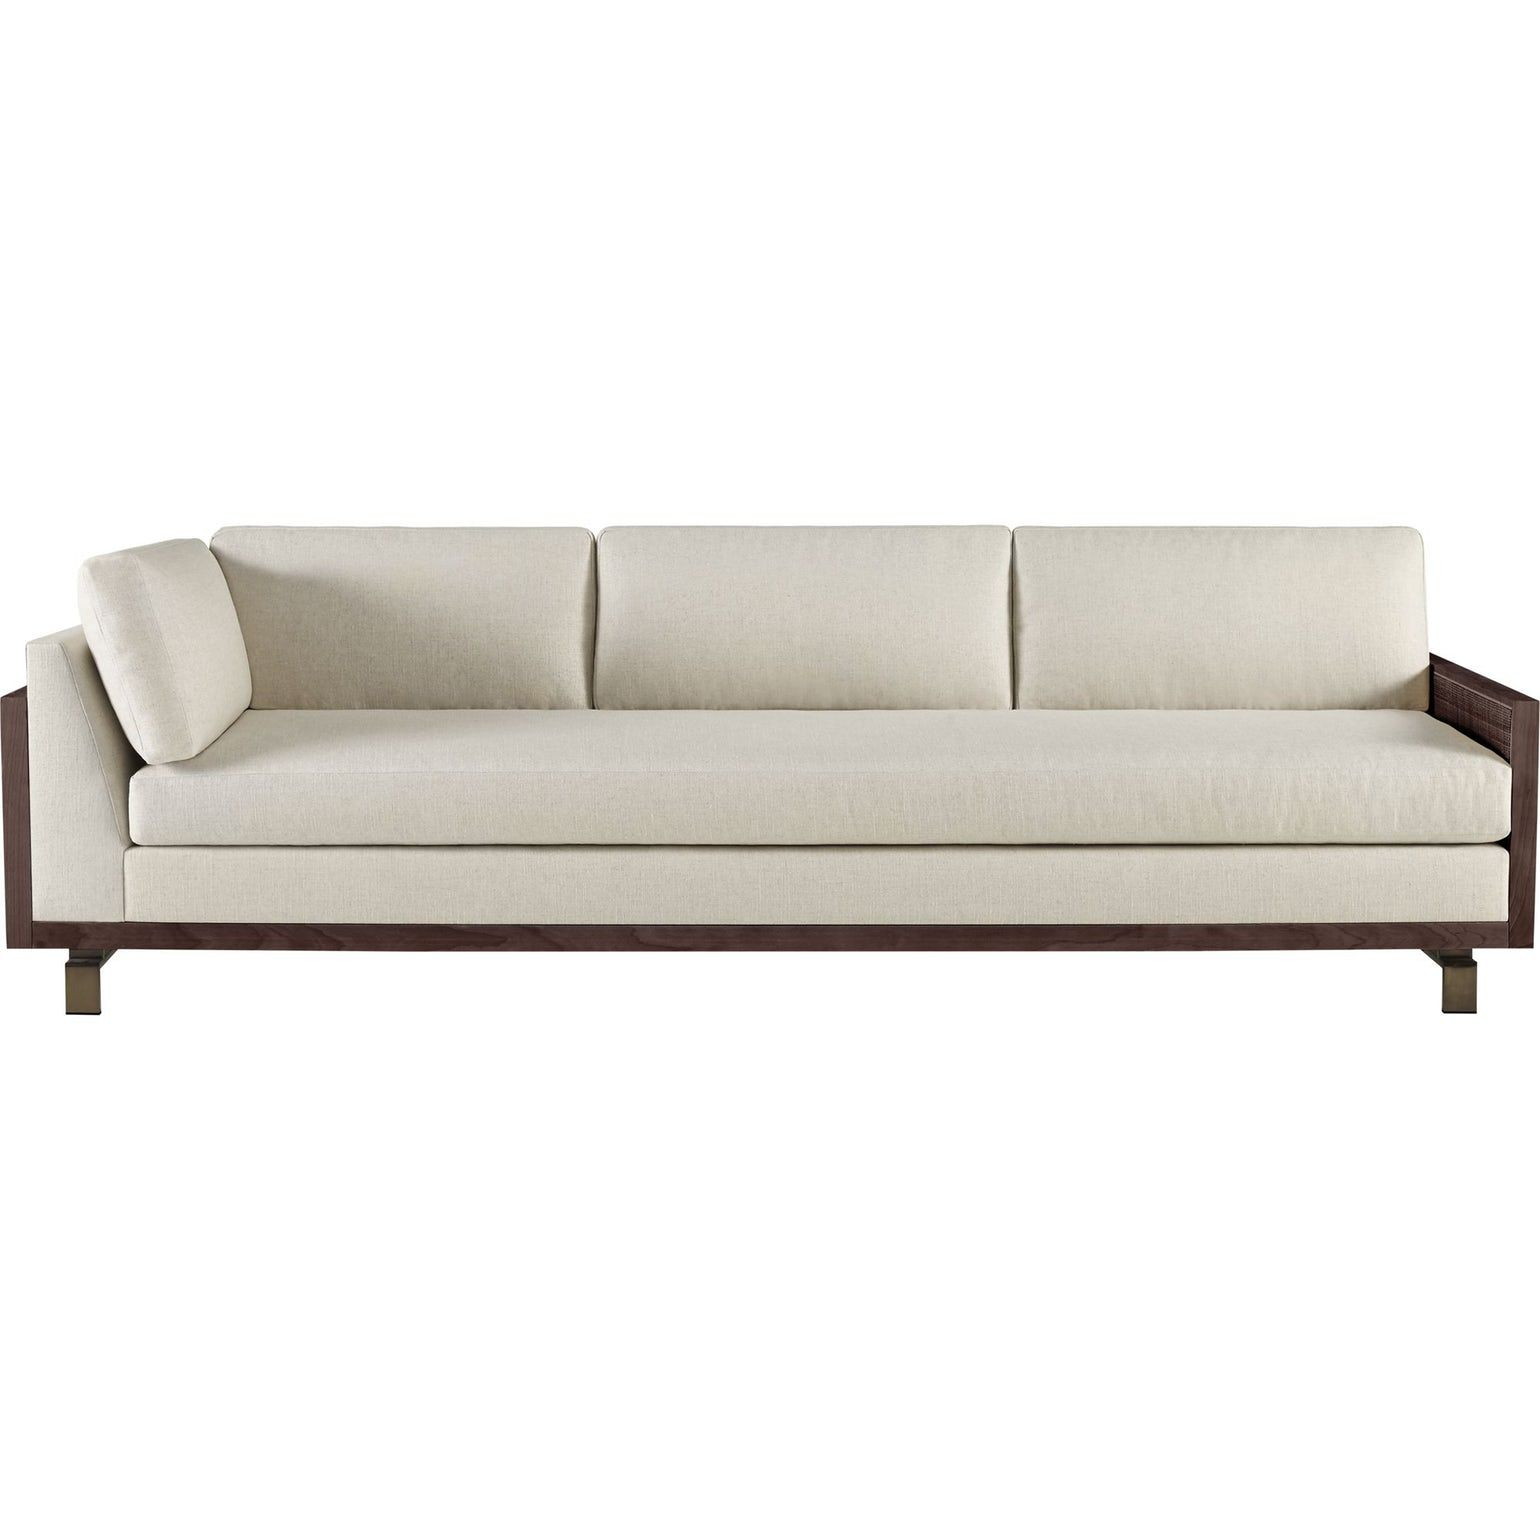 Barbara Barry Thacher Sectional Triple Return Right And Left Facing Contemporary Sofas Sect Contemporary Sectional Sofa Living Room Sofa Design Sofa Design